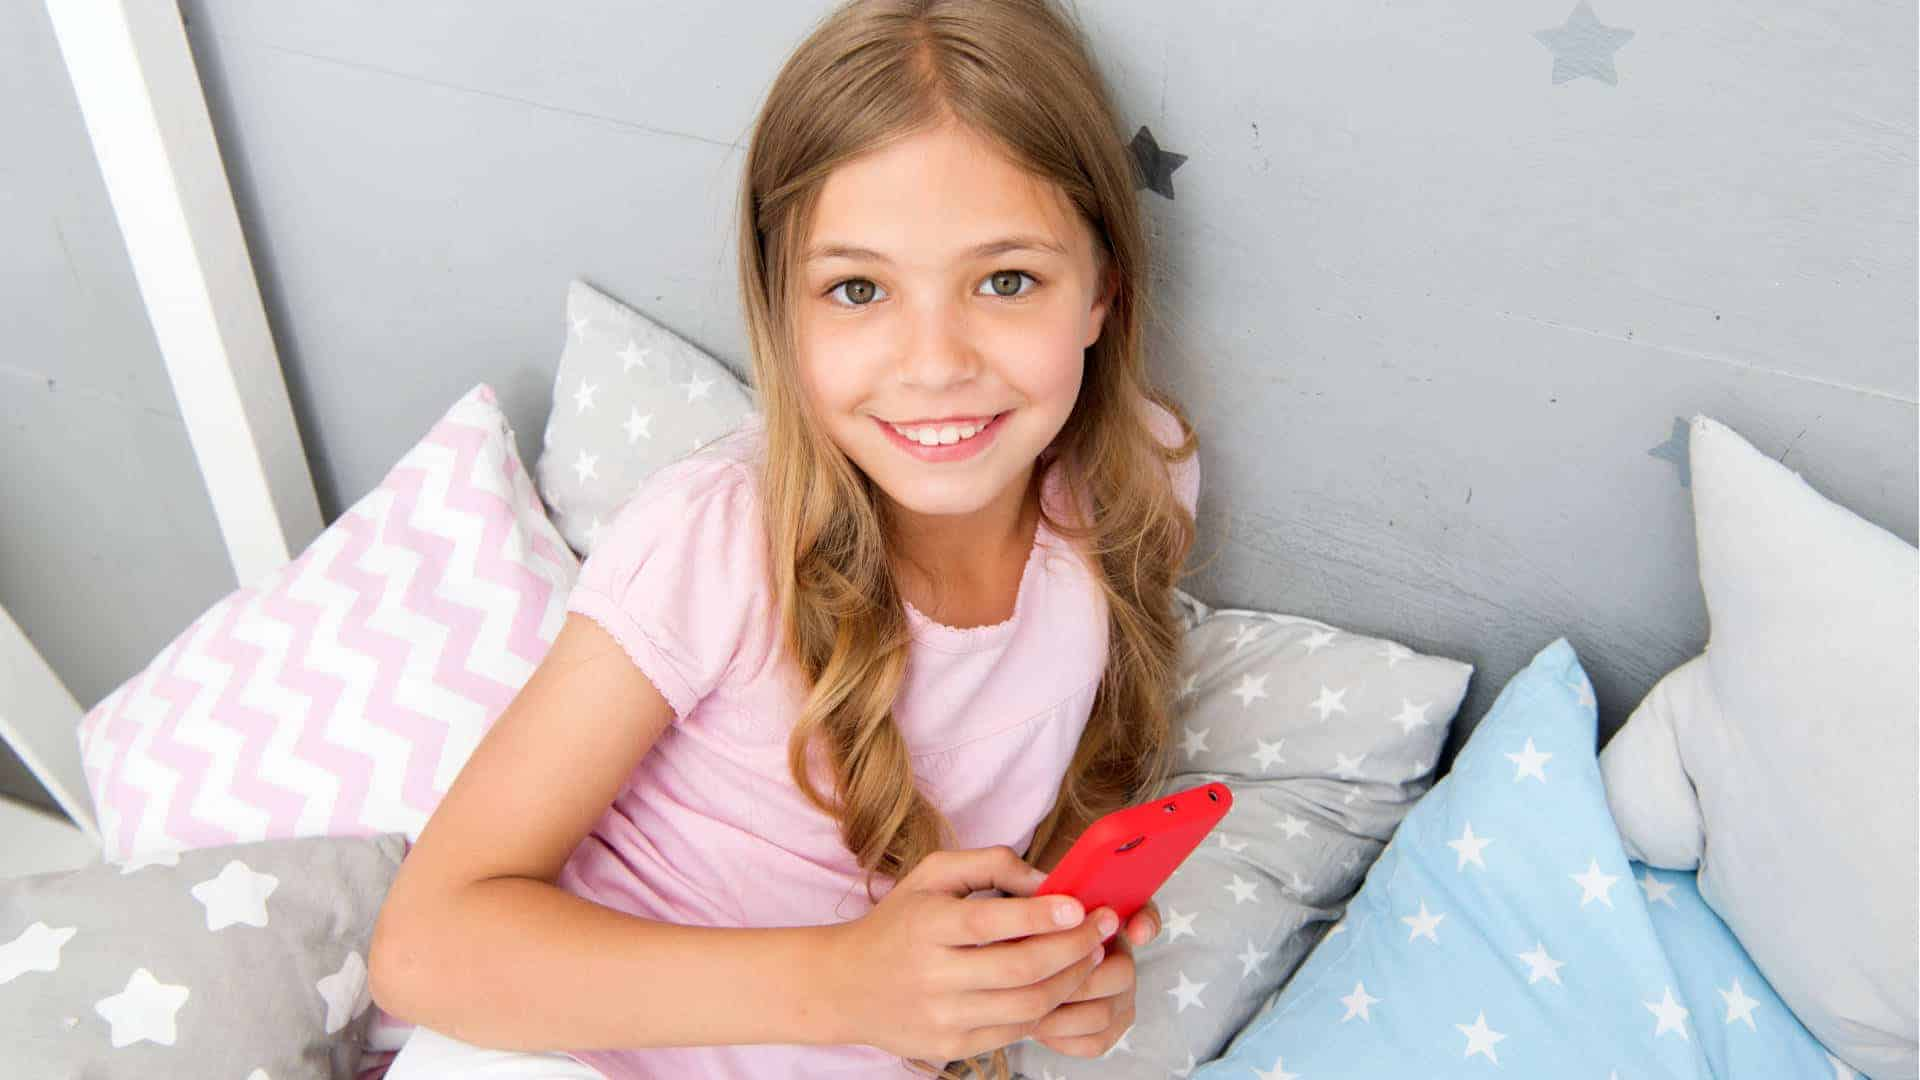 Is Your Child's Smartphone their Best Friend?